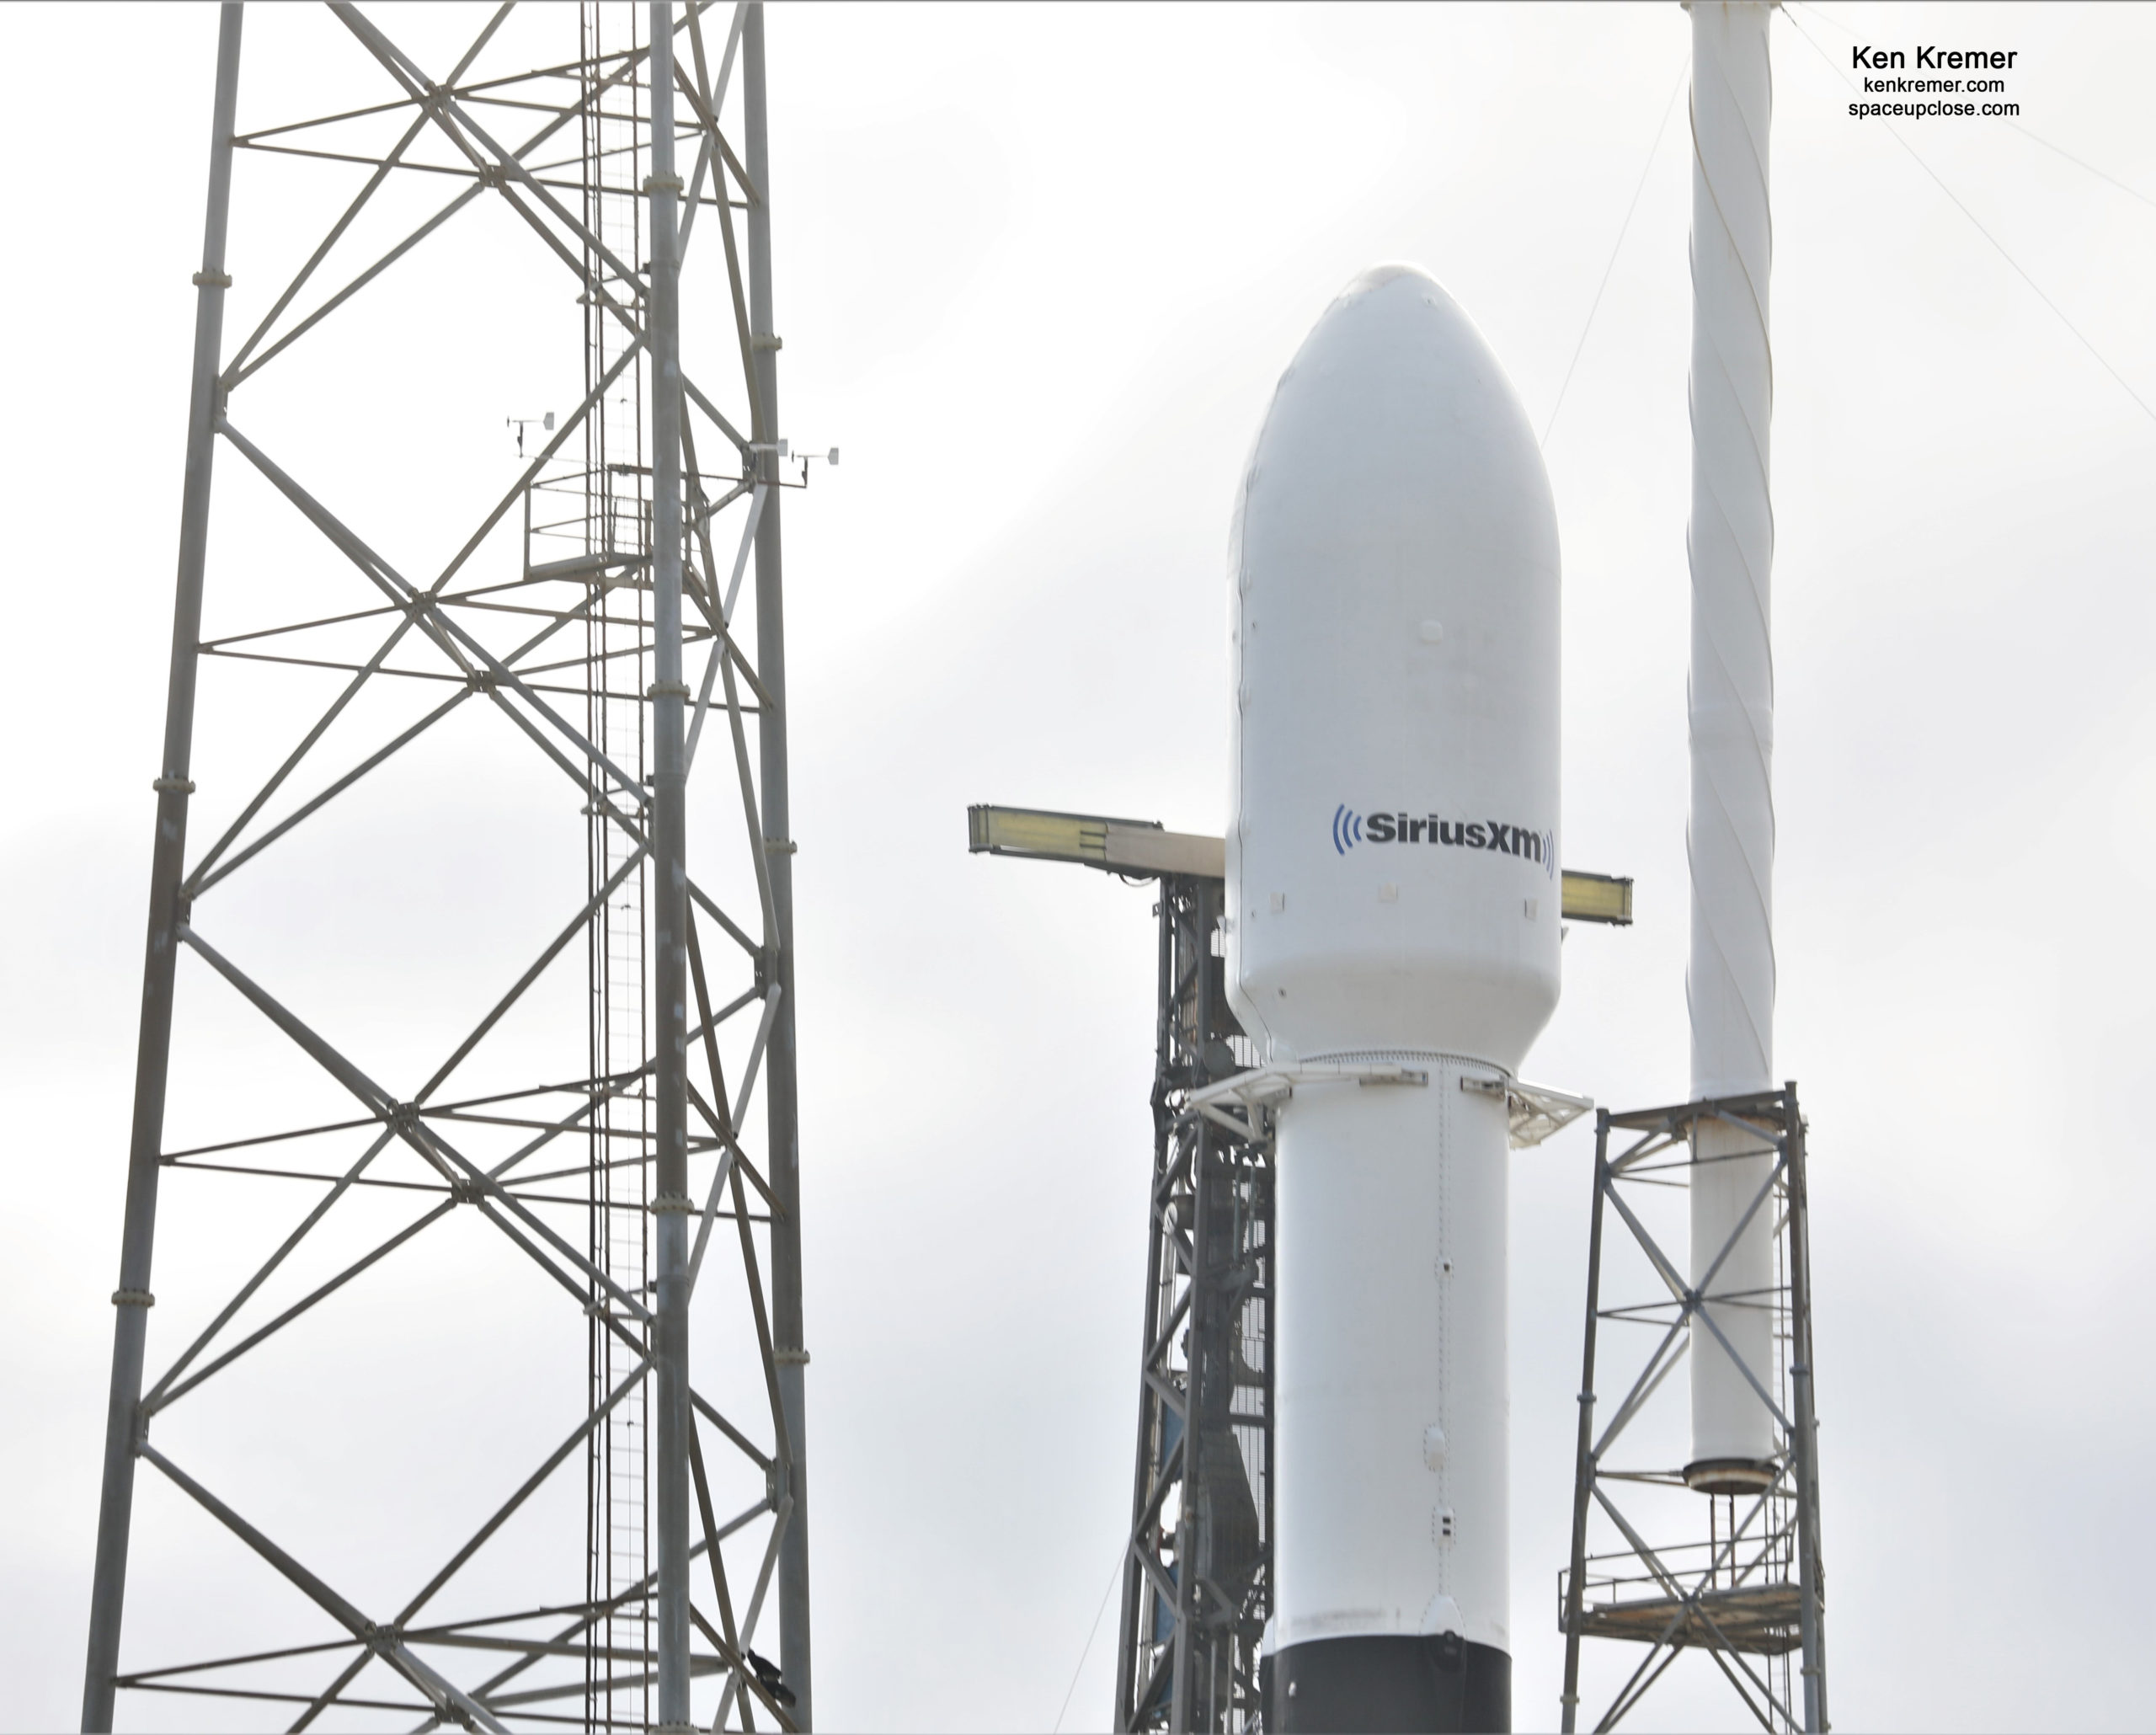 SpaceX Targets Sunday Dec. 13 Launch for SiriusXM SXM-7 Digital Audio Satellite after Friday Scrub: Watch Live/Photos